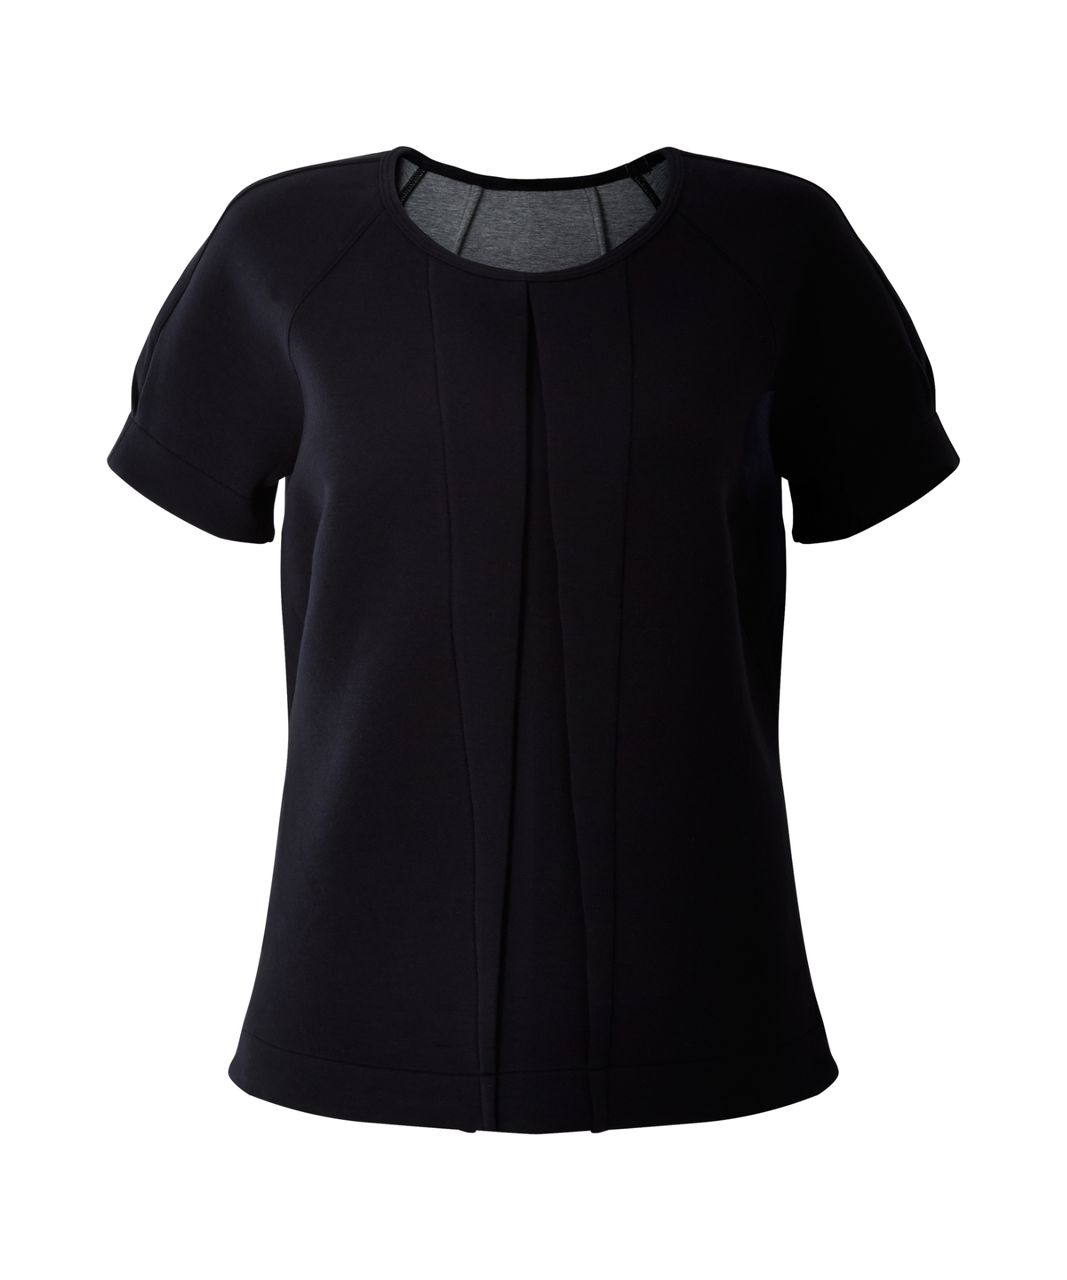 Lululemon &go Keepsake Tee - Black